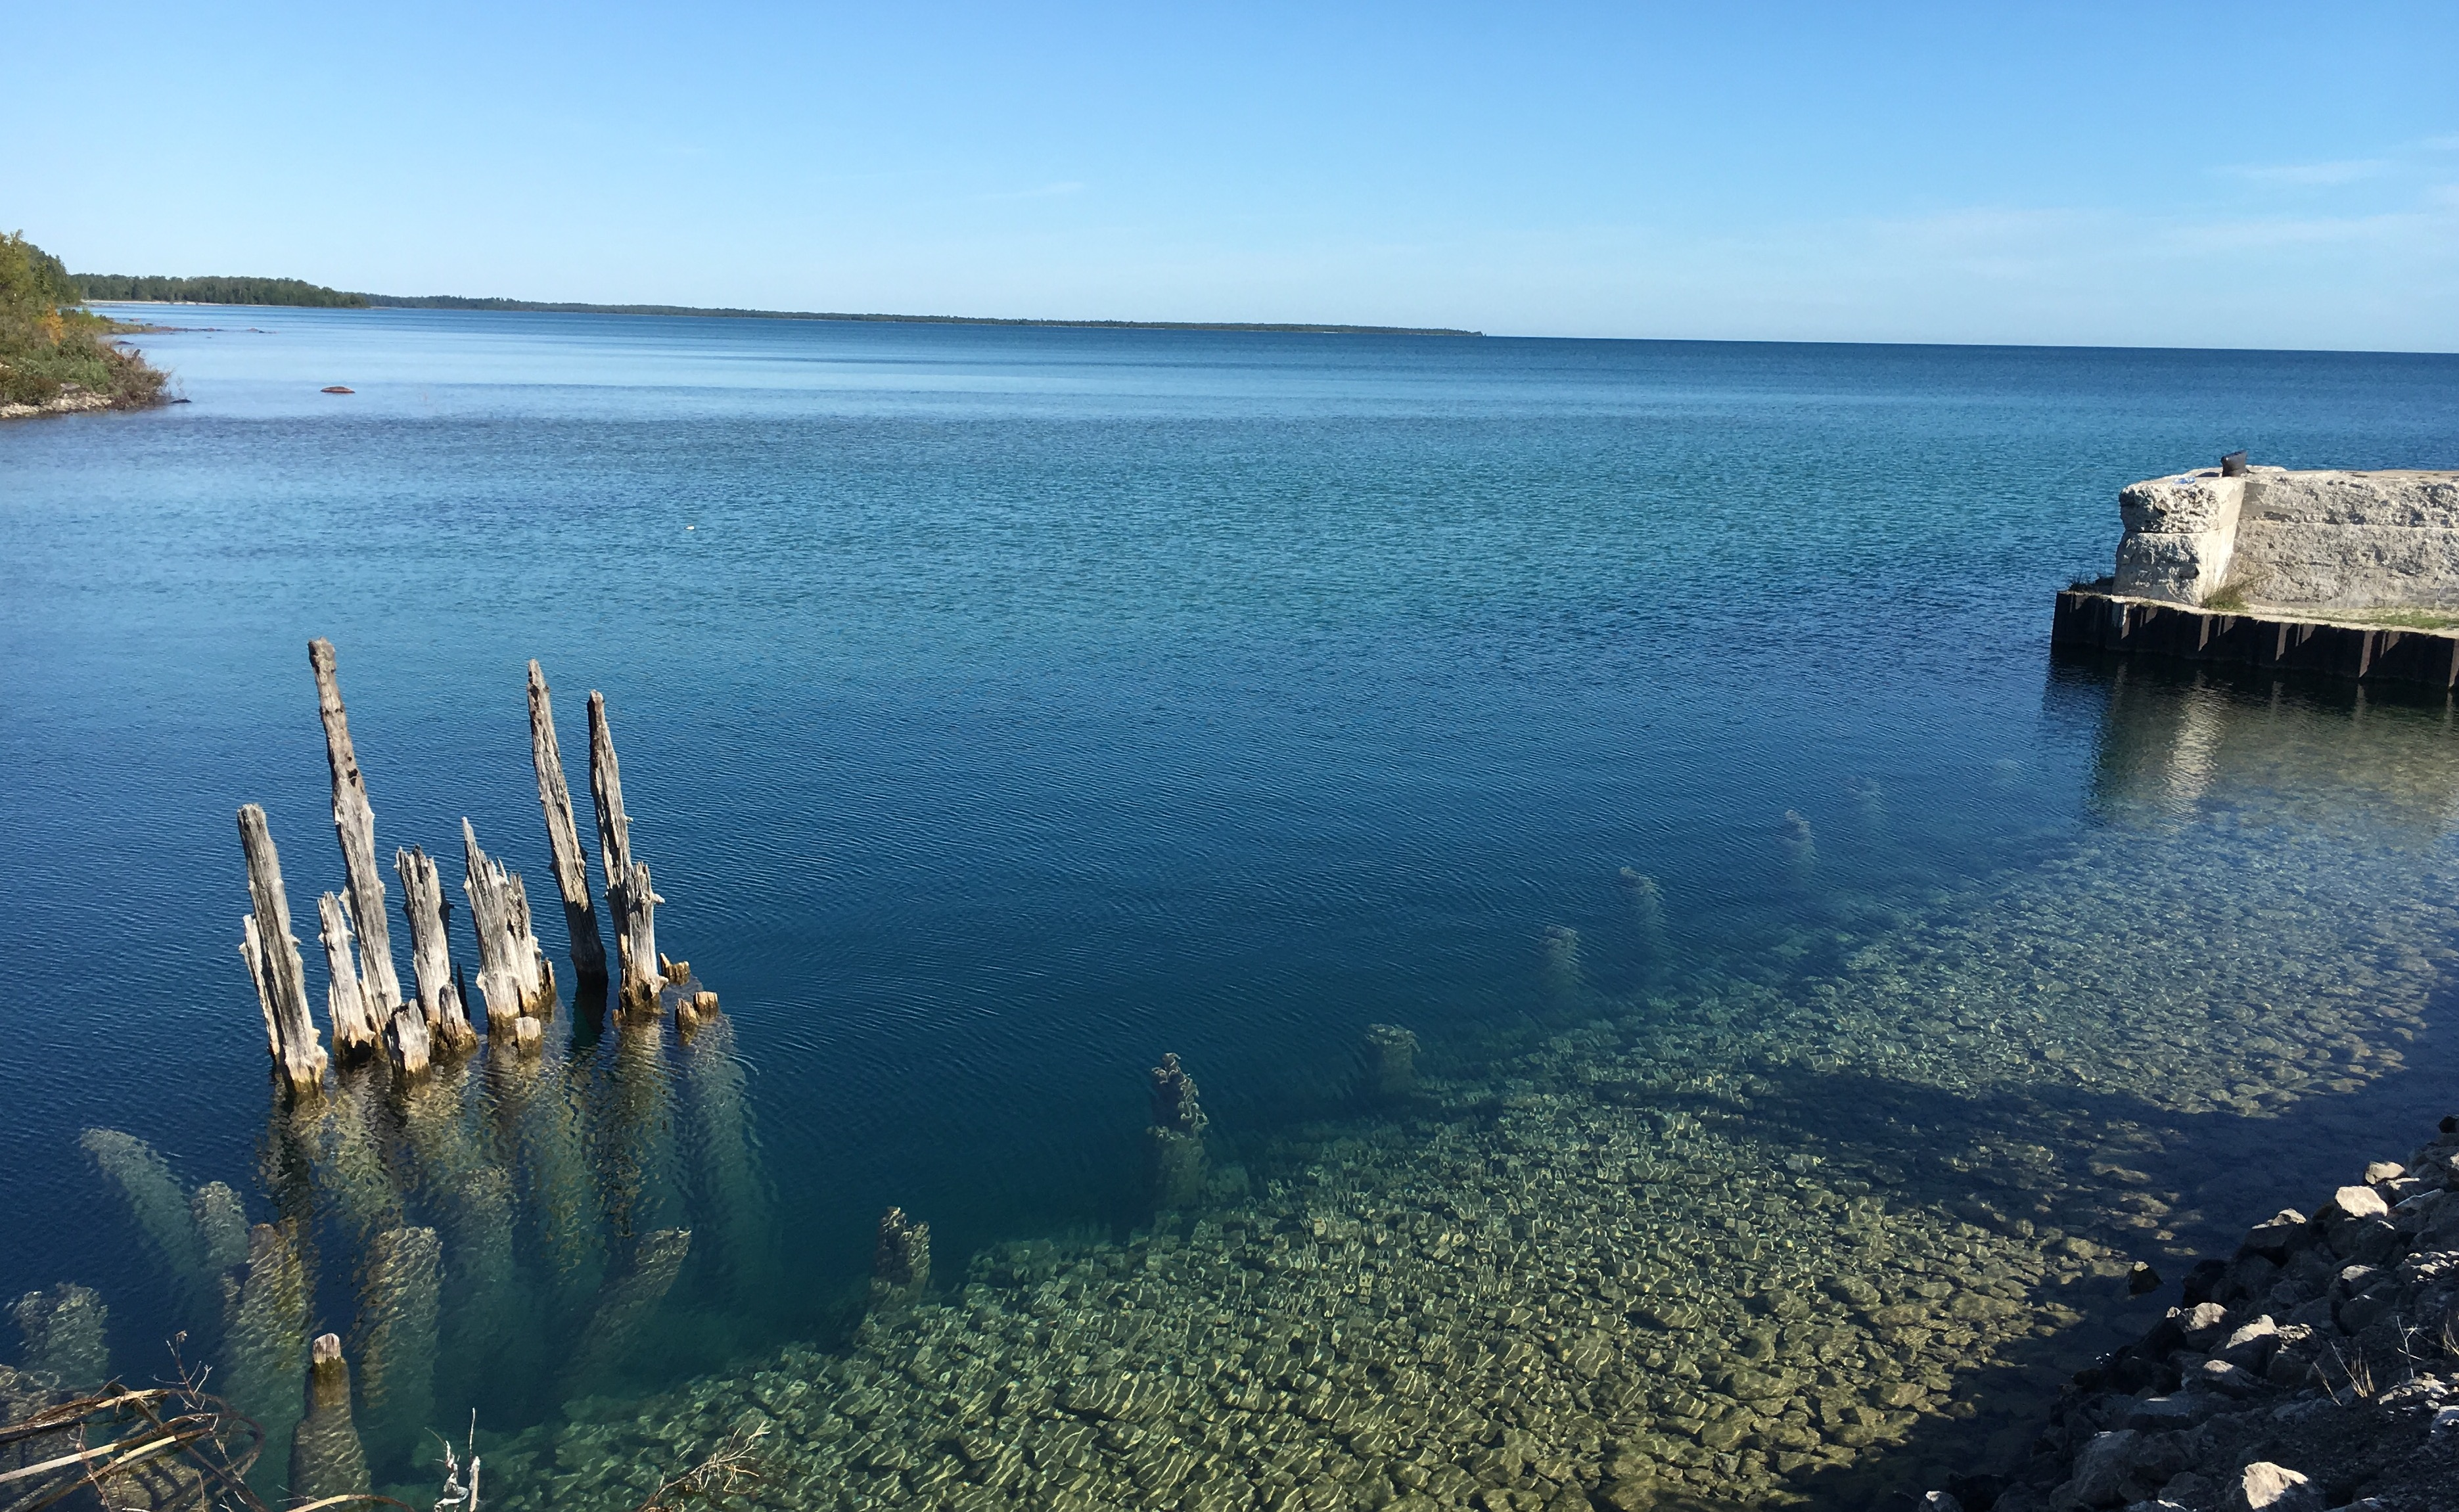 Lake huron mackinac island kiger tales a beautiful hike through the forest to the shores of lake huron on presque island sciox Gallery